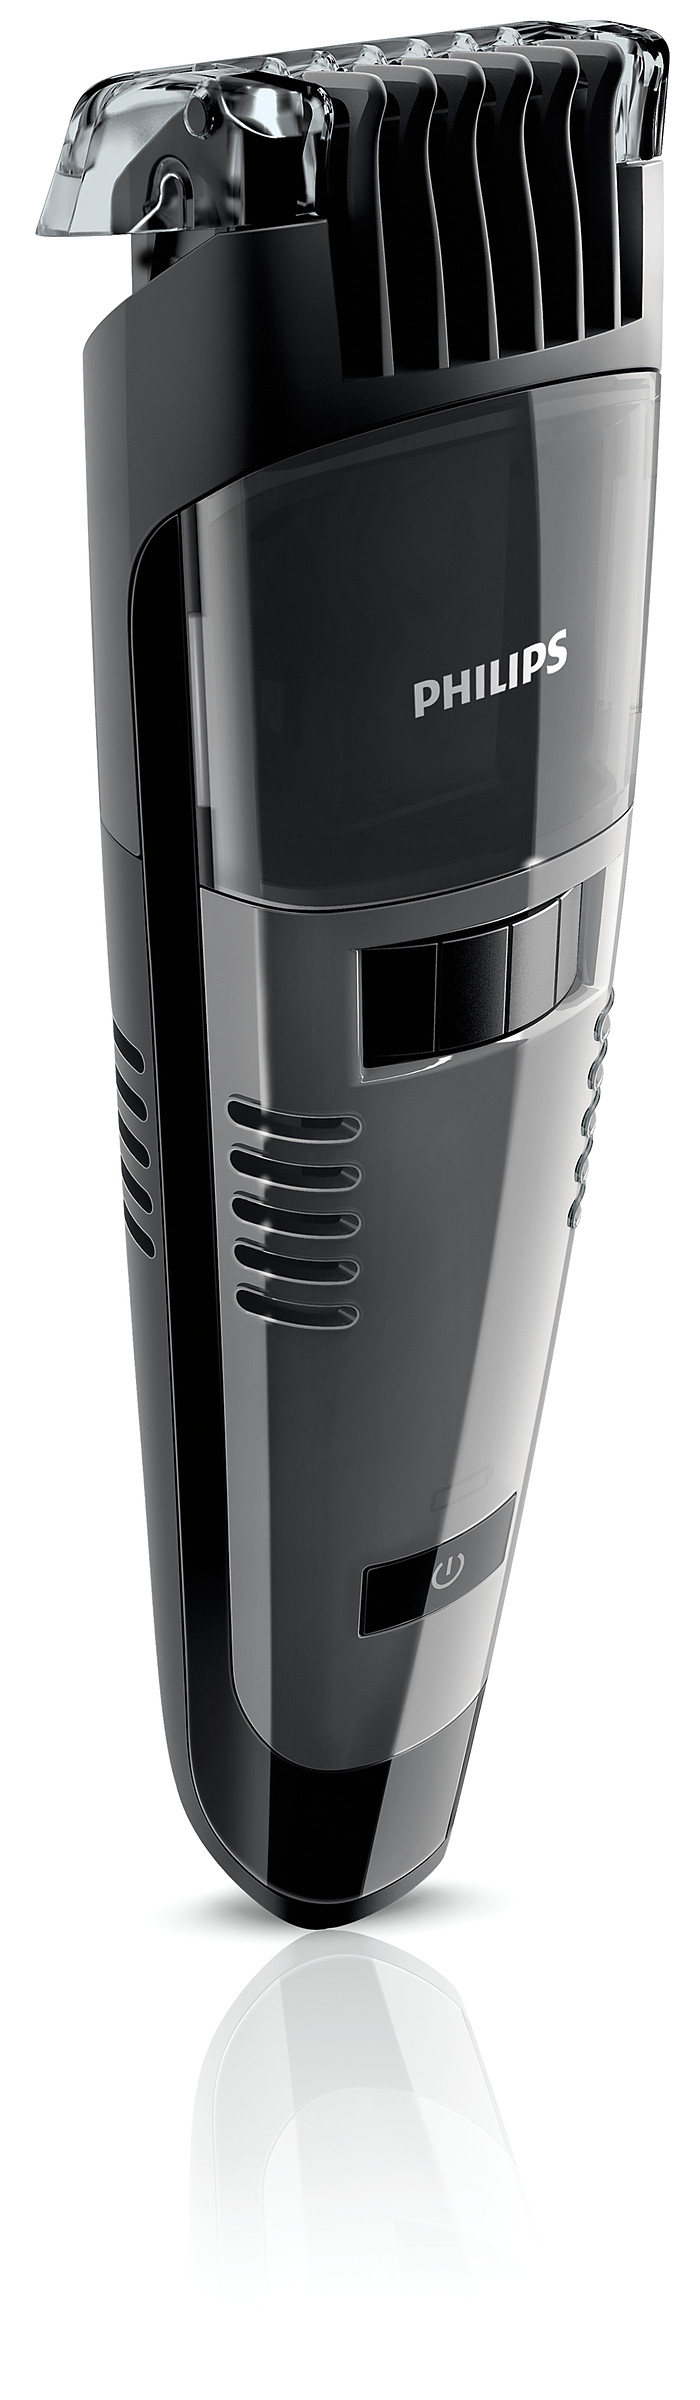 beardtrimmer series 7000 vacuum beard trimmer qt4050 15 philips. Black Bedroom Furniture Sets. Home Design Ideas